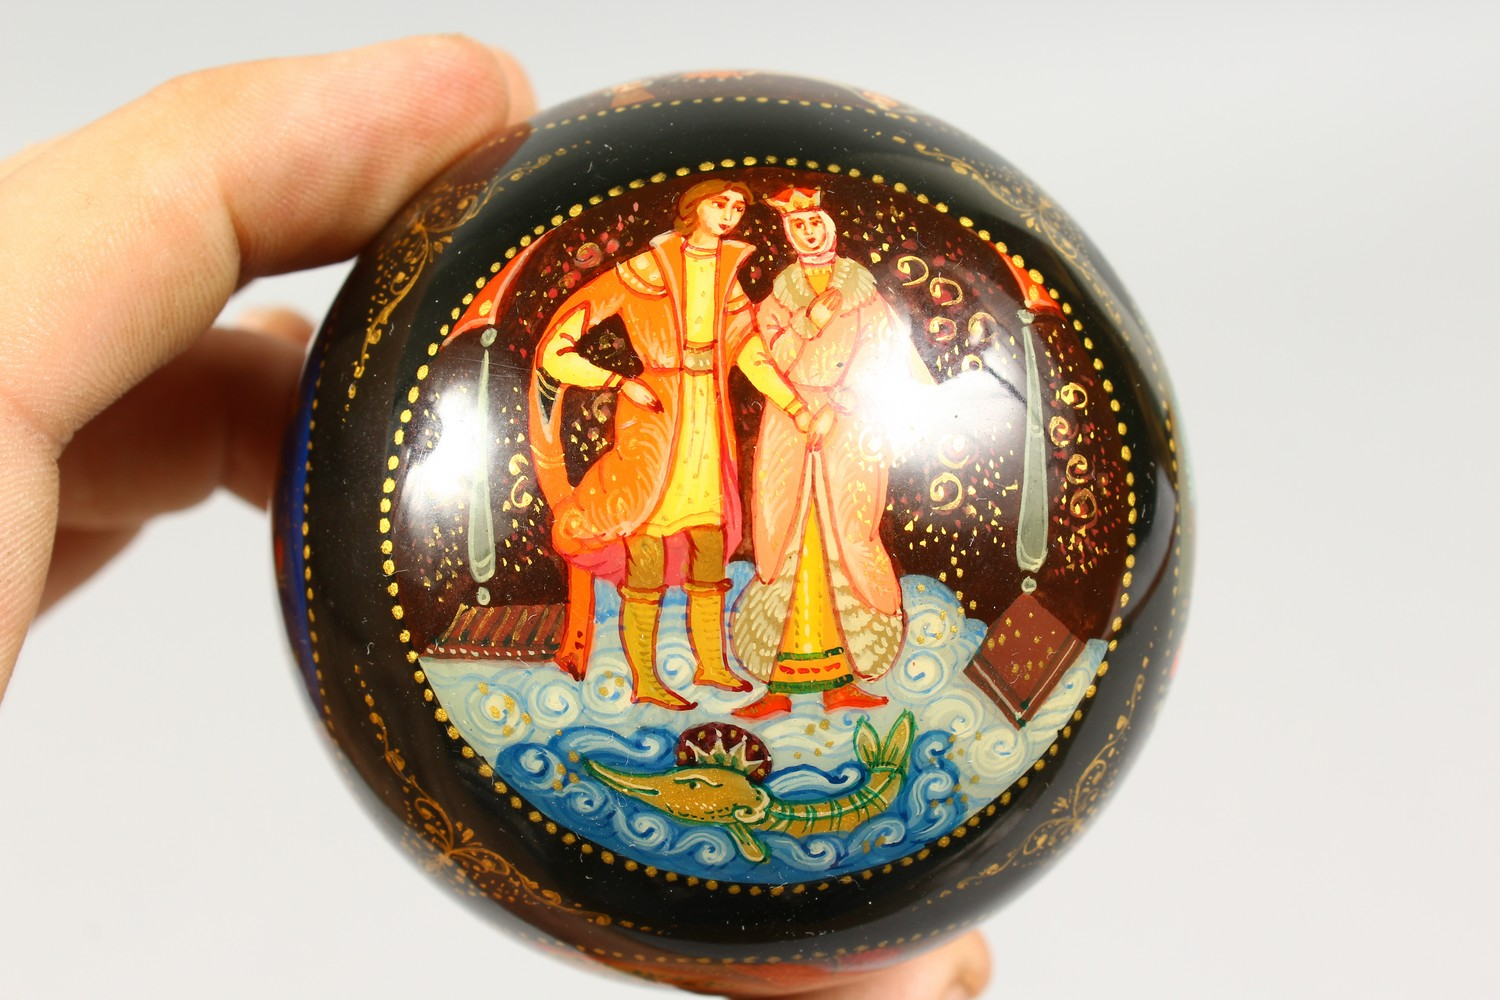 TWO SMALL RUSSIAN CIRCULAR BLACK PAPIER MACHE BOXES AND COVERS. 2.5ins diameter. - Image 6 of 12